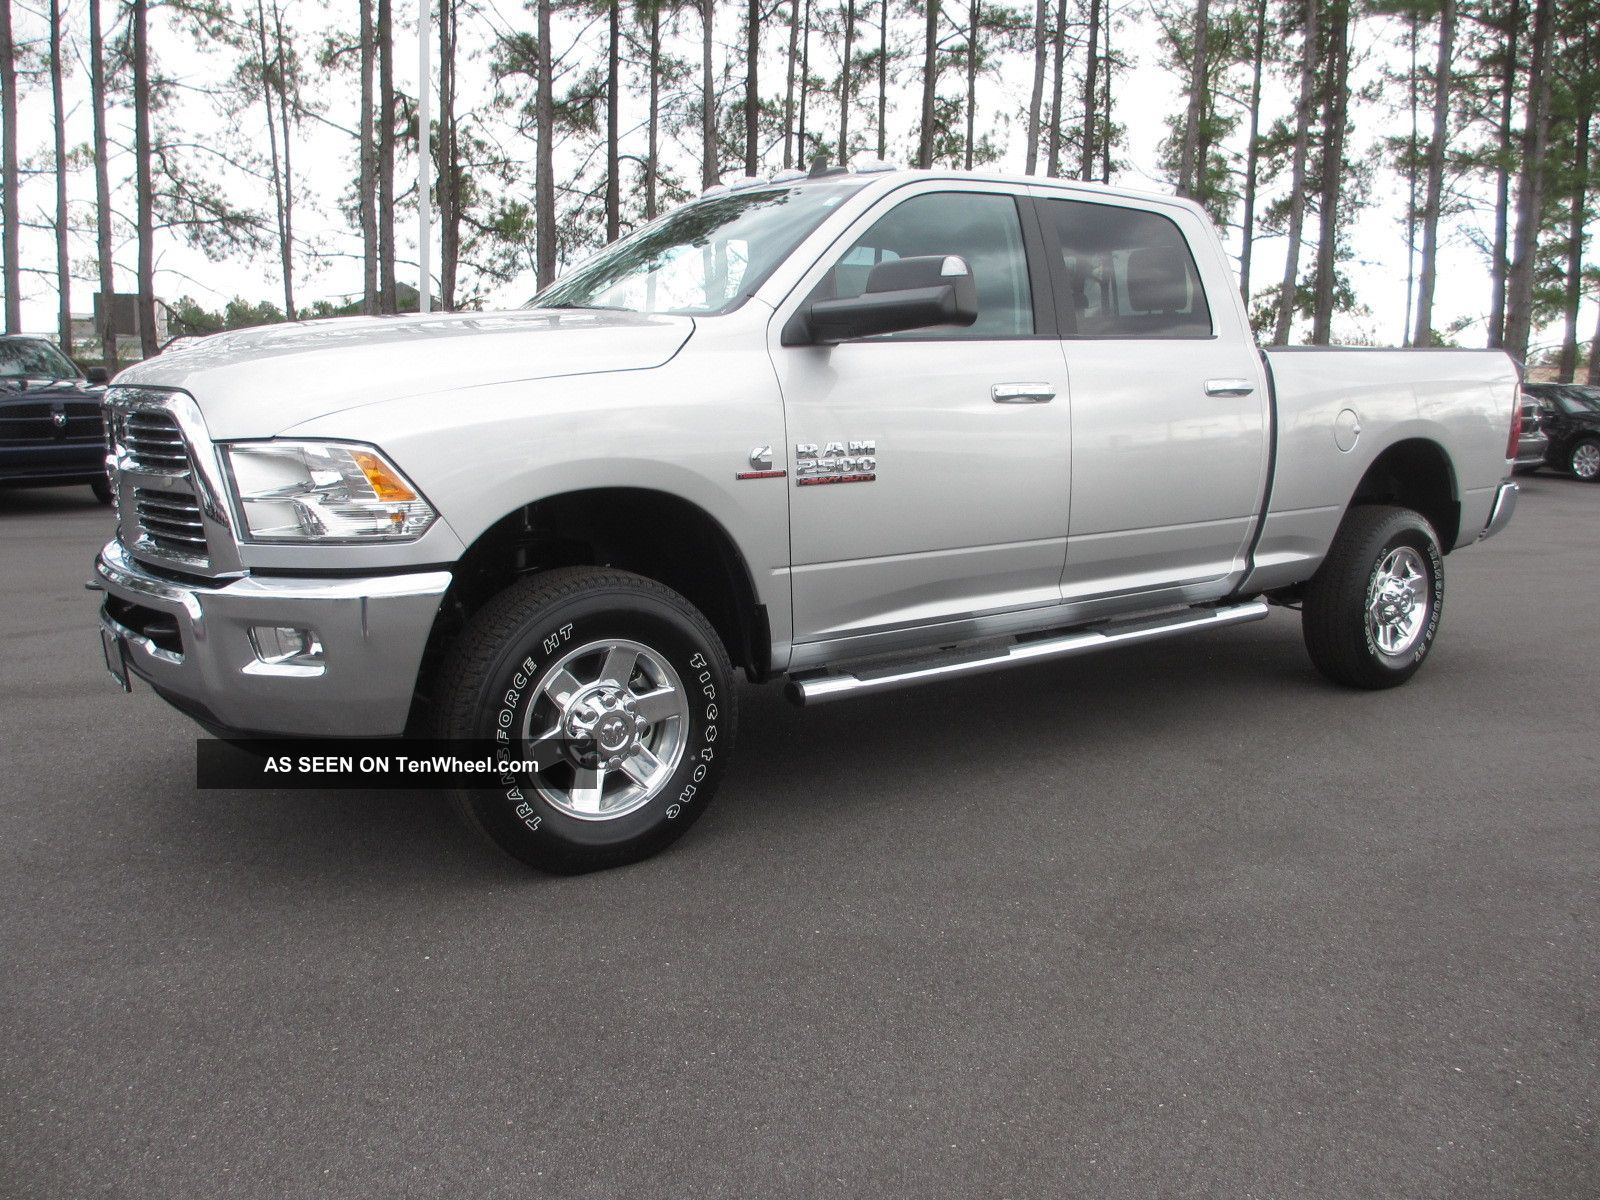 2013 dodge ram 2500 crew cab slt 4x4 lowest in usa us b4 you buy - Crew cab dodge ram ...